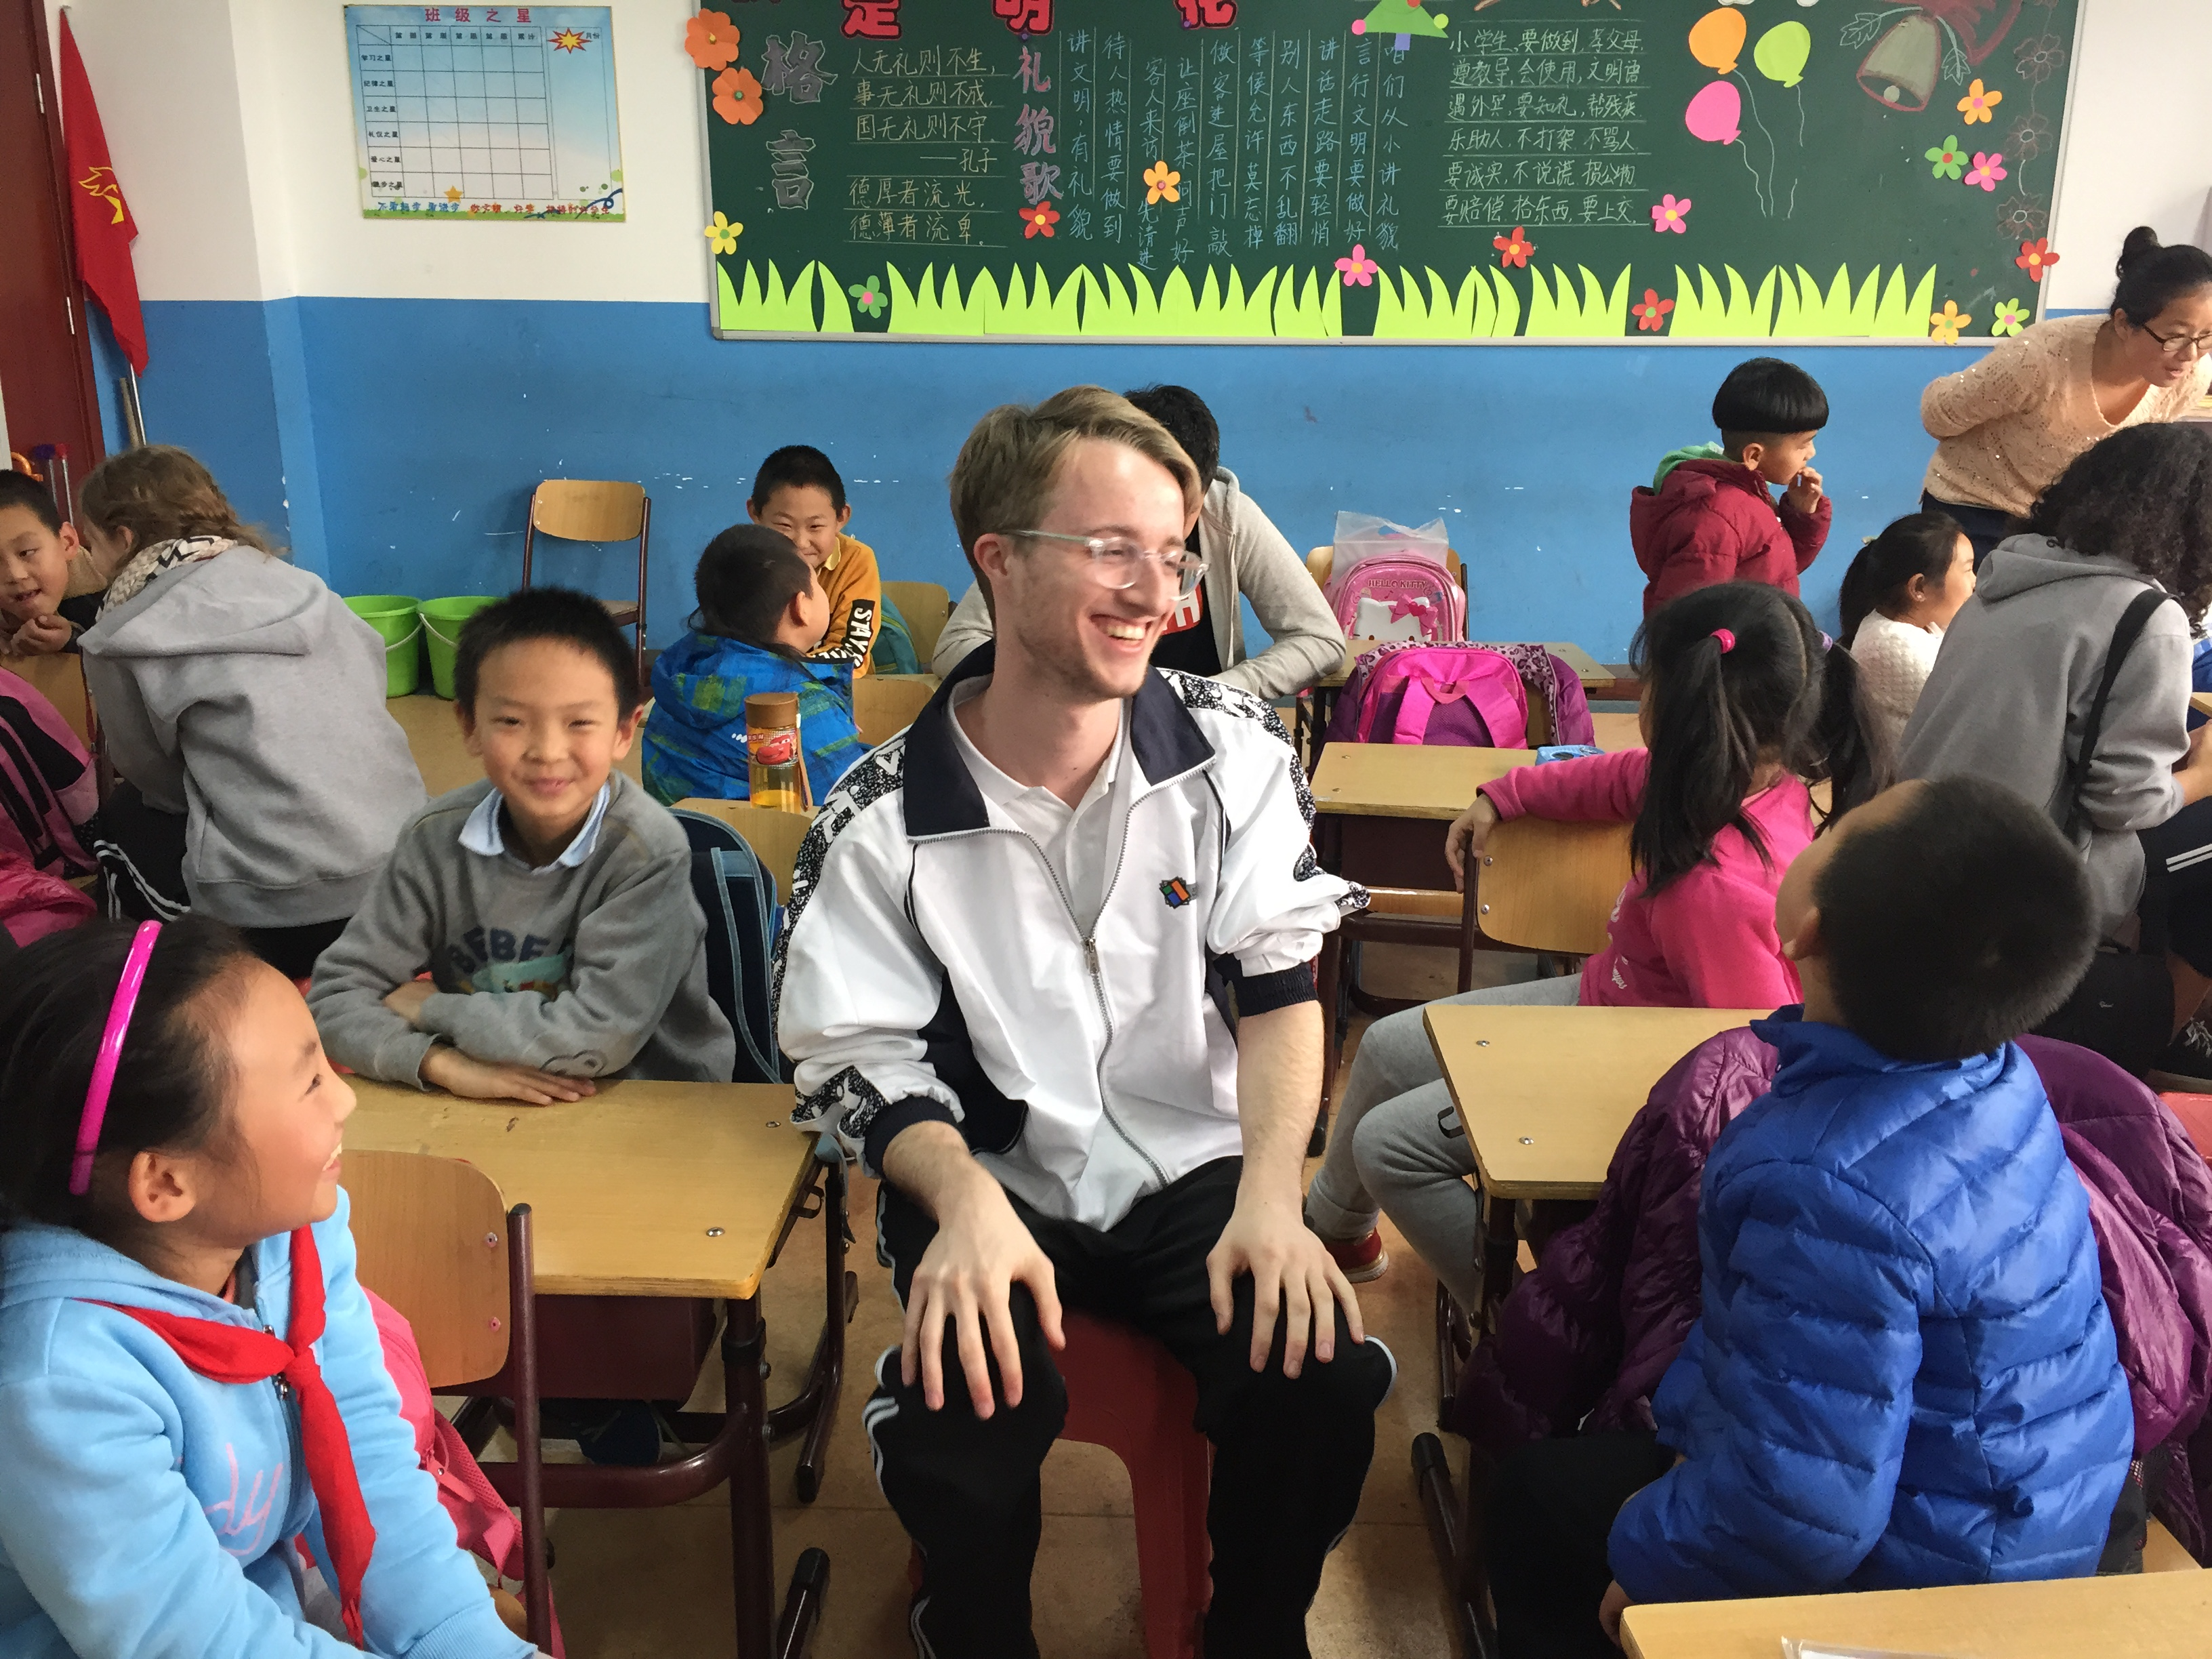 Ryan sits in the middle of young chinese children in a classroom